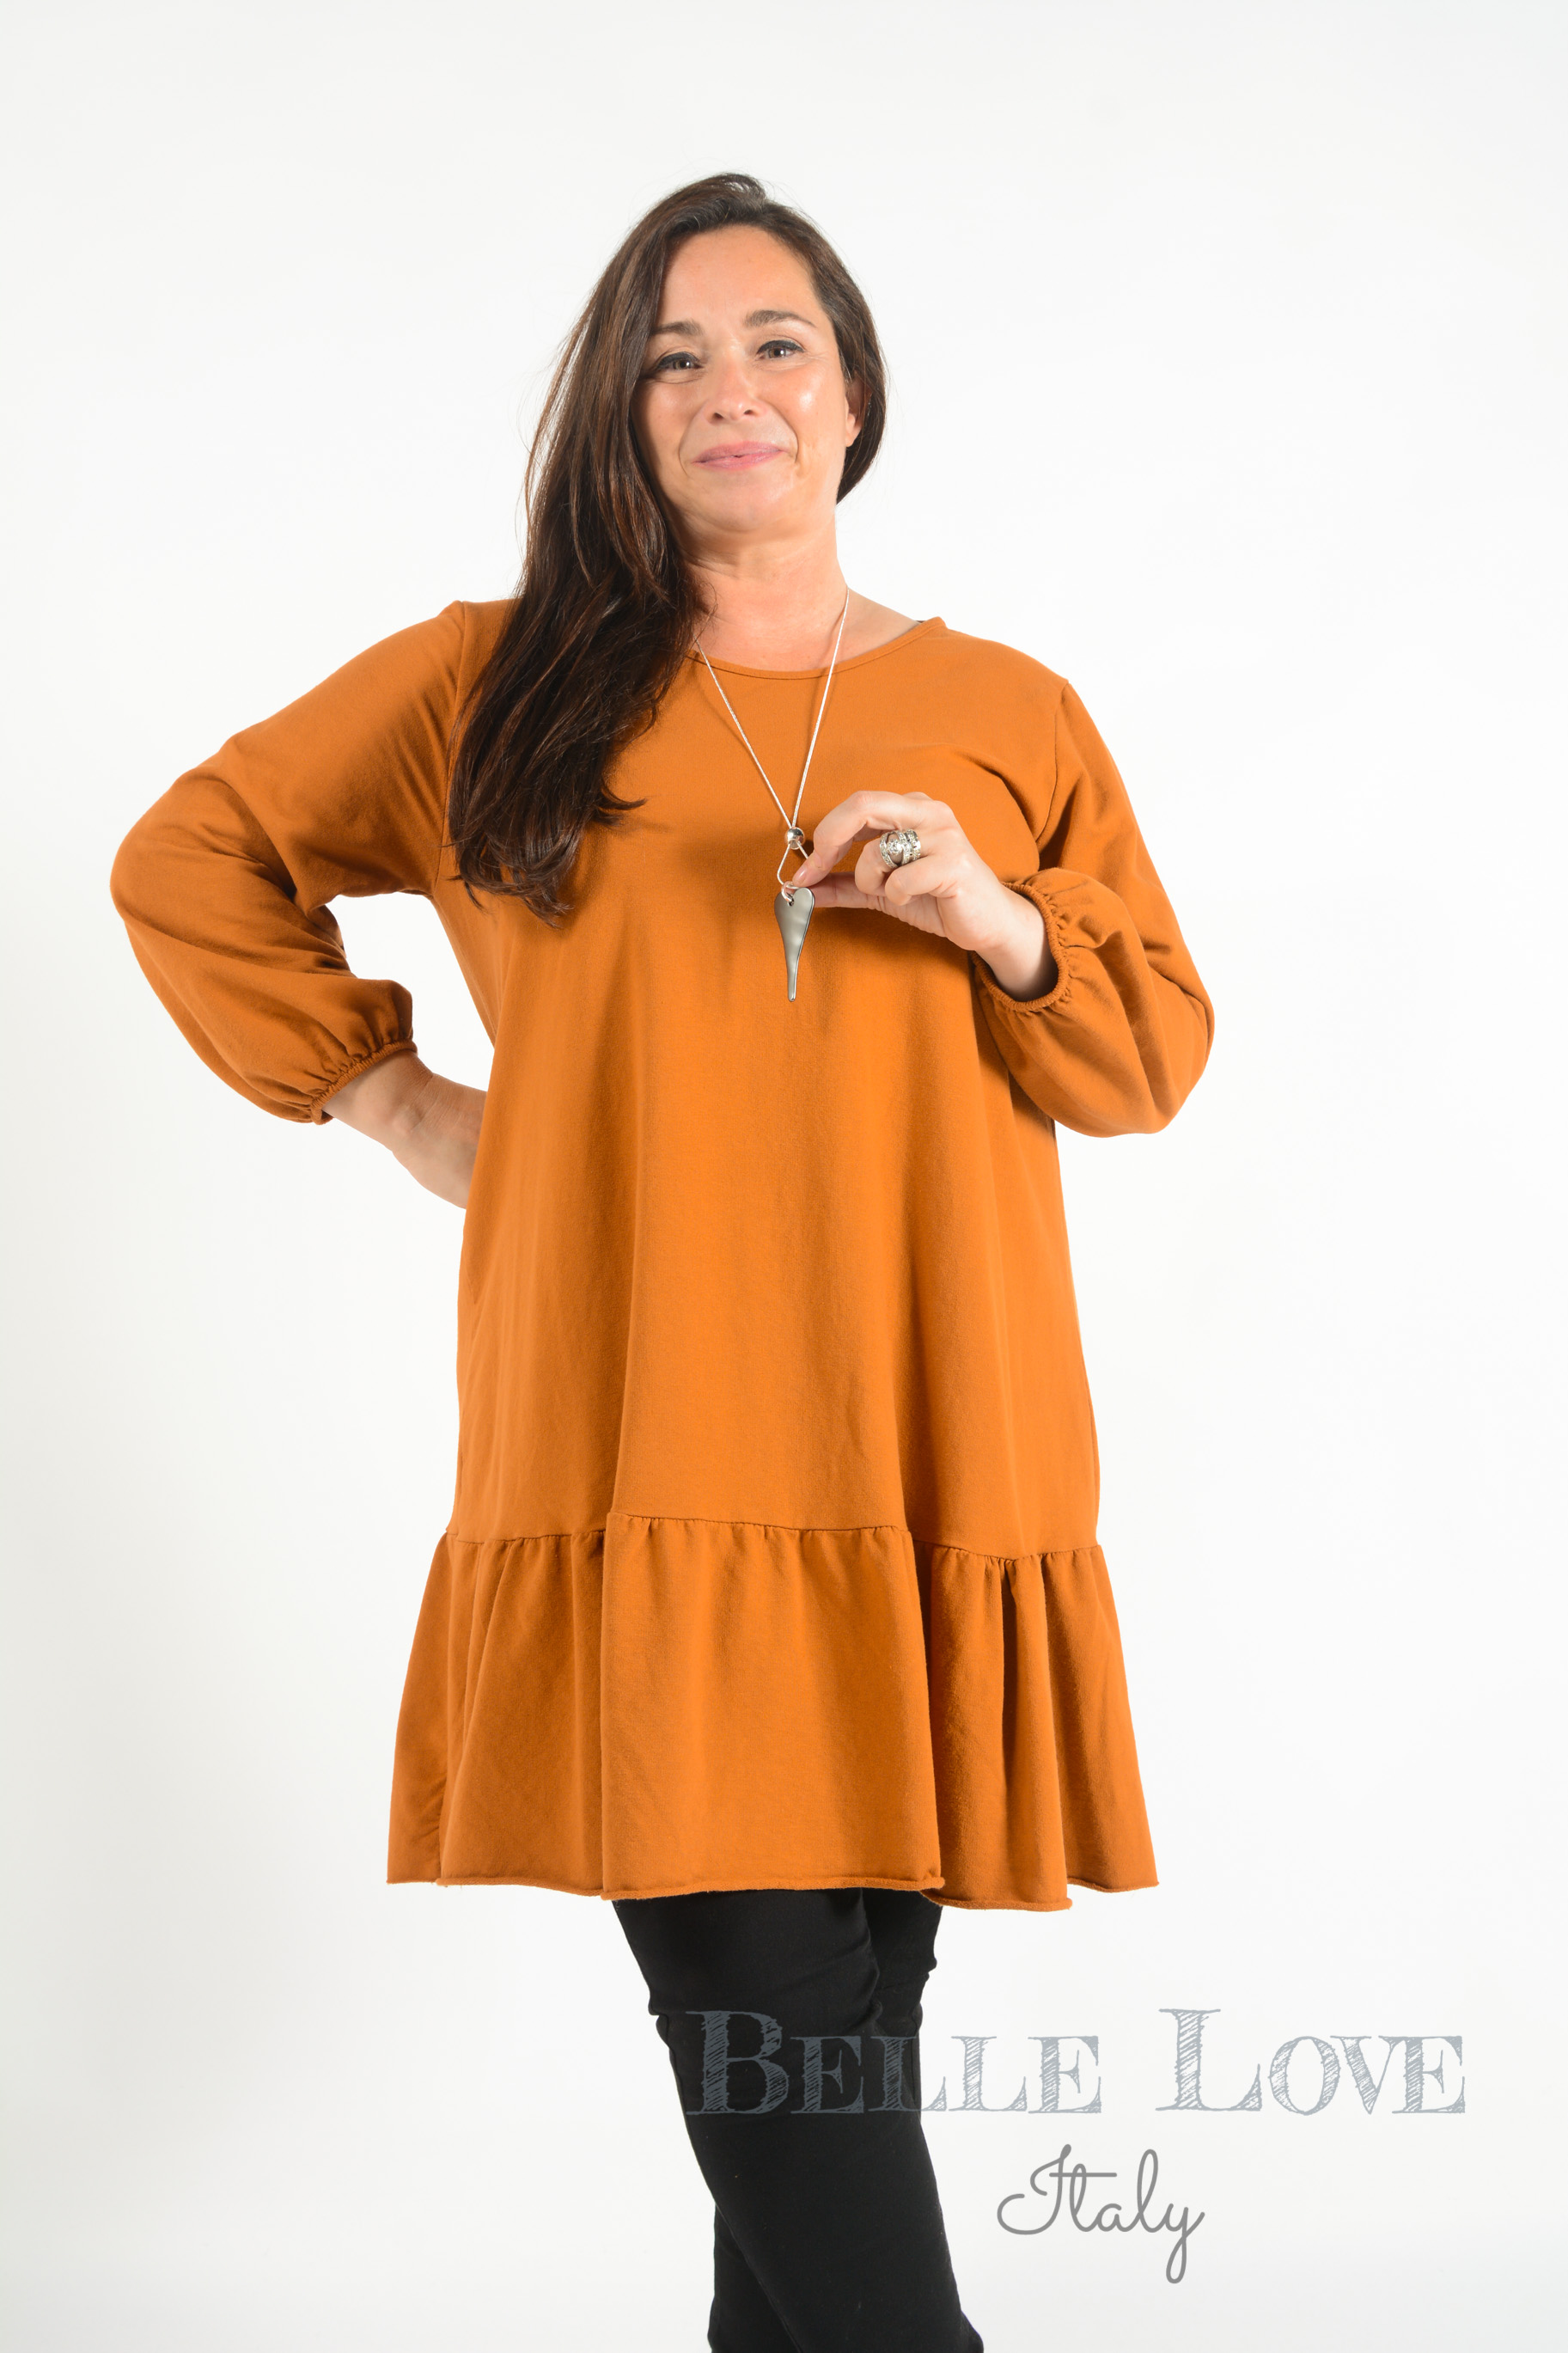 Belle Love Italy Millie Tunic